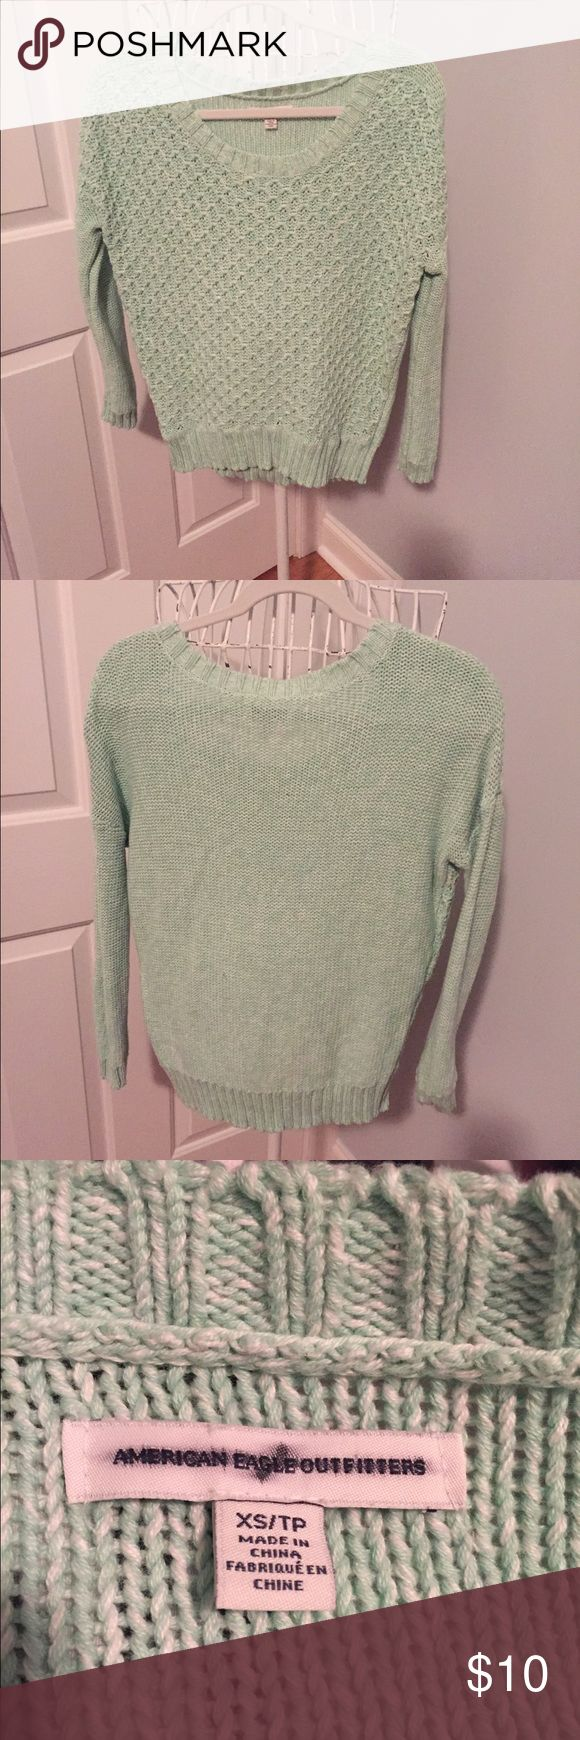 American Eagle Mint Green Sweater Soft and chunky cotton sweater.  Looks great with jeans.  Perfect condition.  No pills or flaws.  This sweater came from an America Eagle outlet store so the tag is blacked out. American Eagle Outfitters Sweaters Crew & Scoop Necks